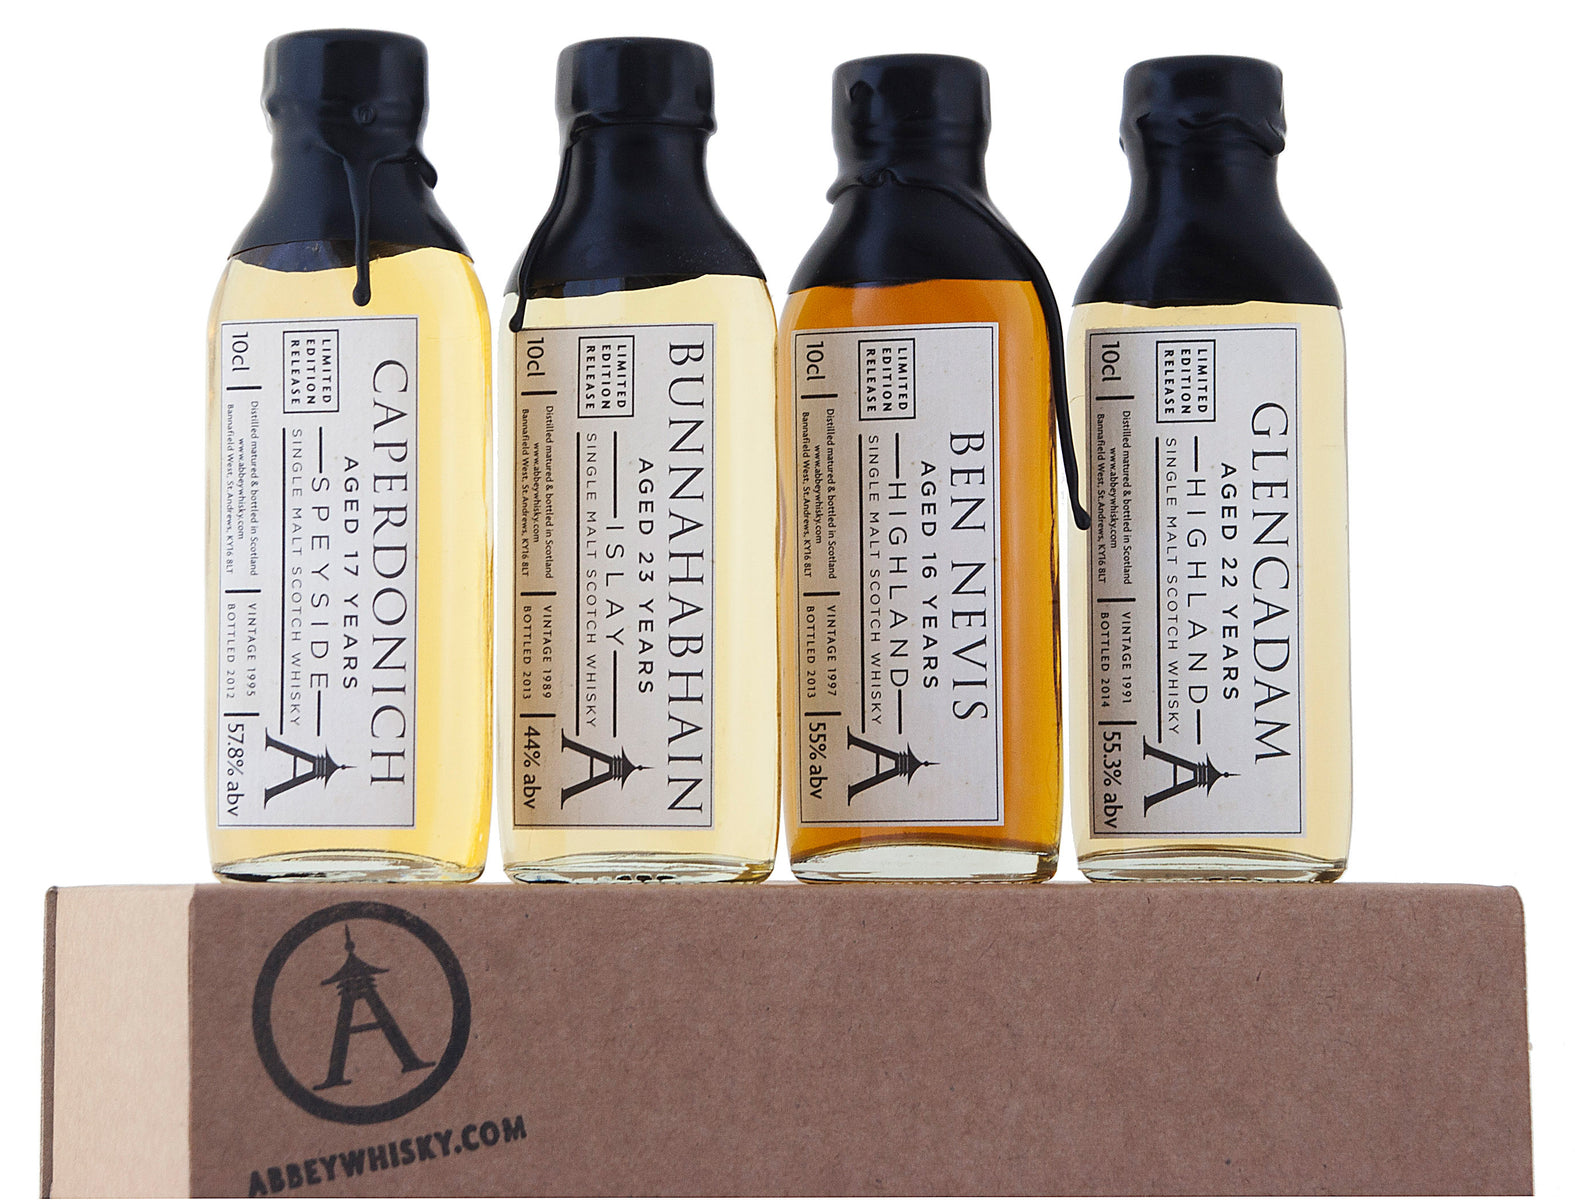 The Rare Casks Whisky Gift Set (Abbey Whisky)